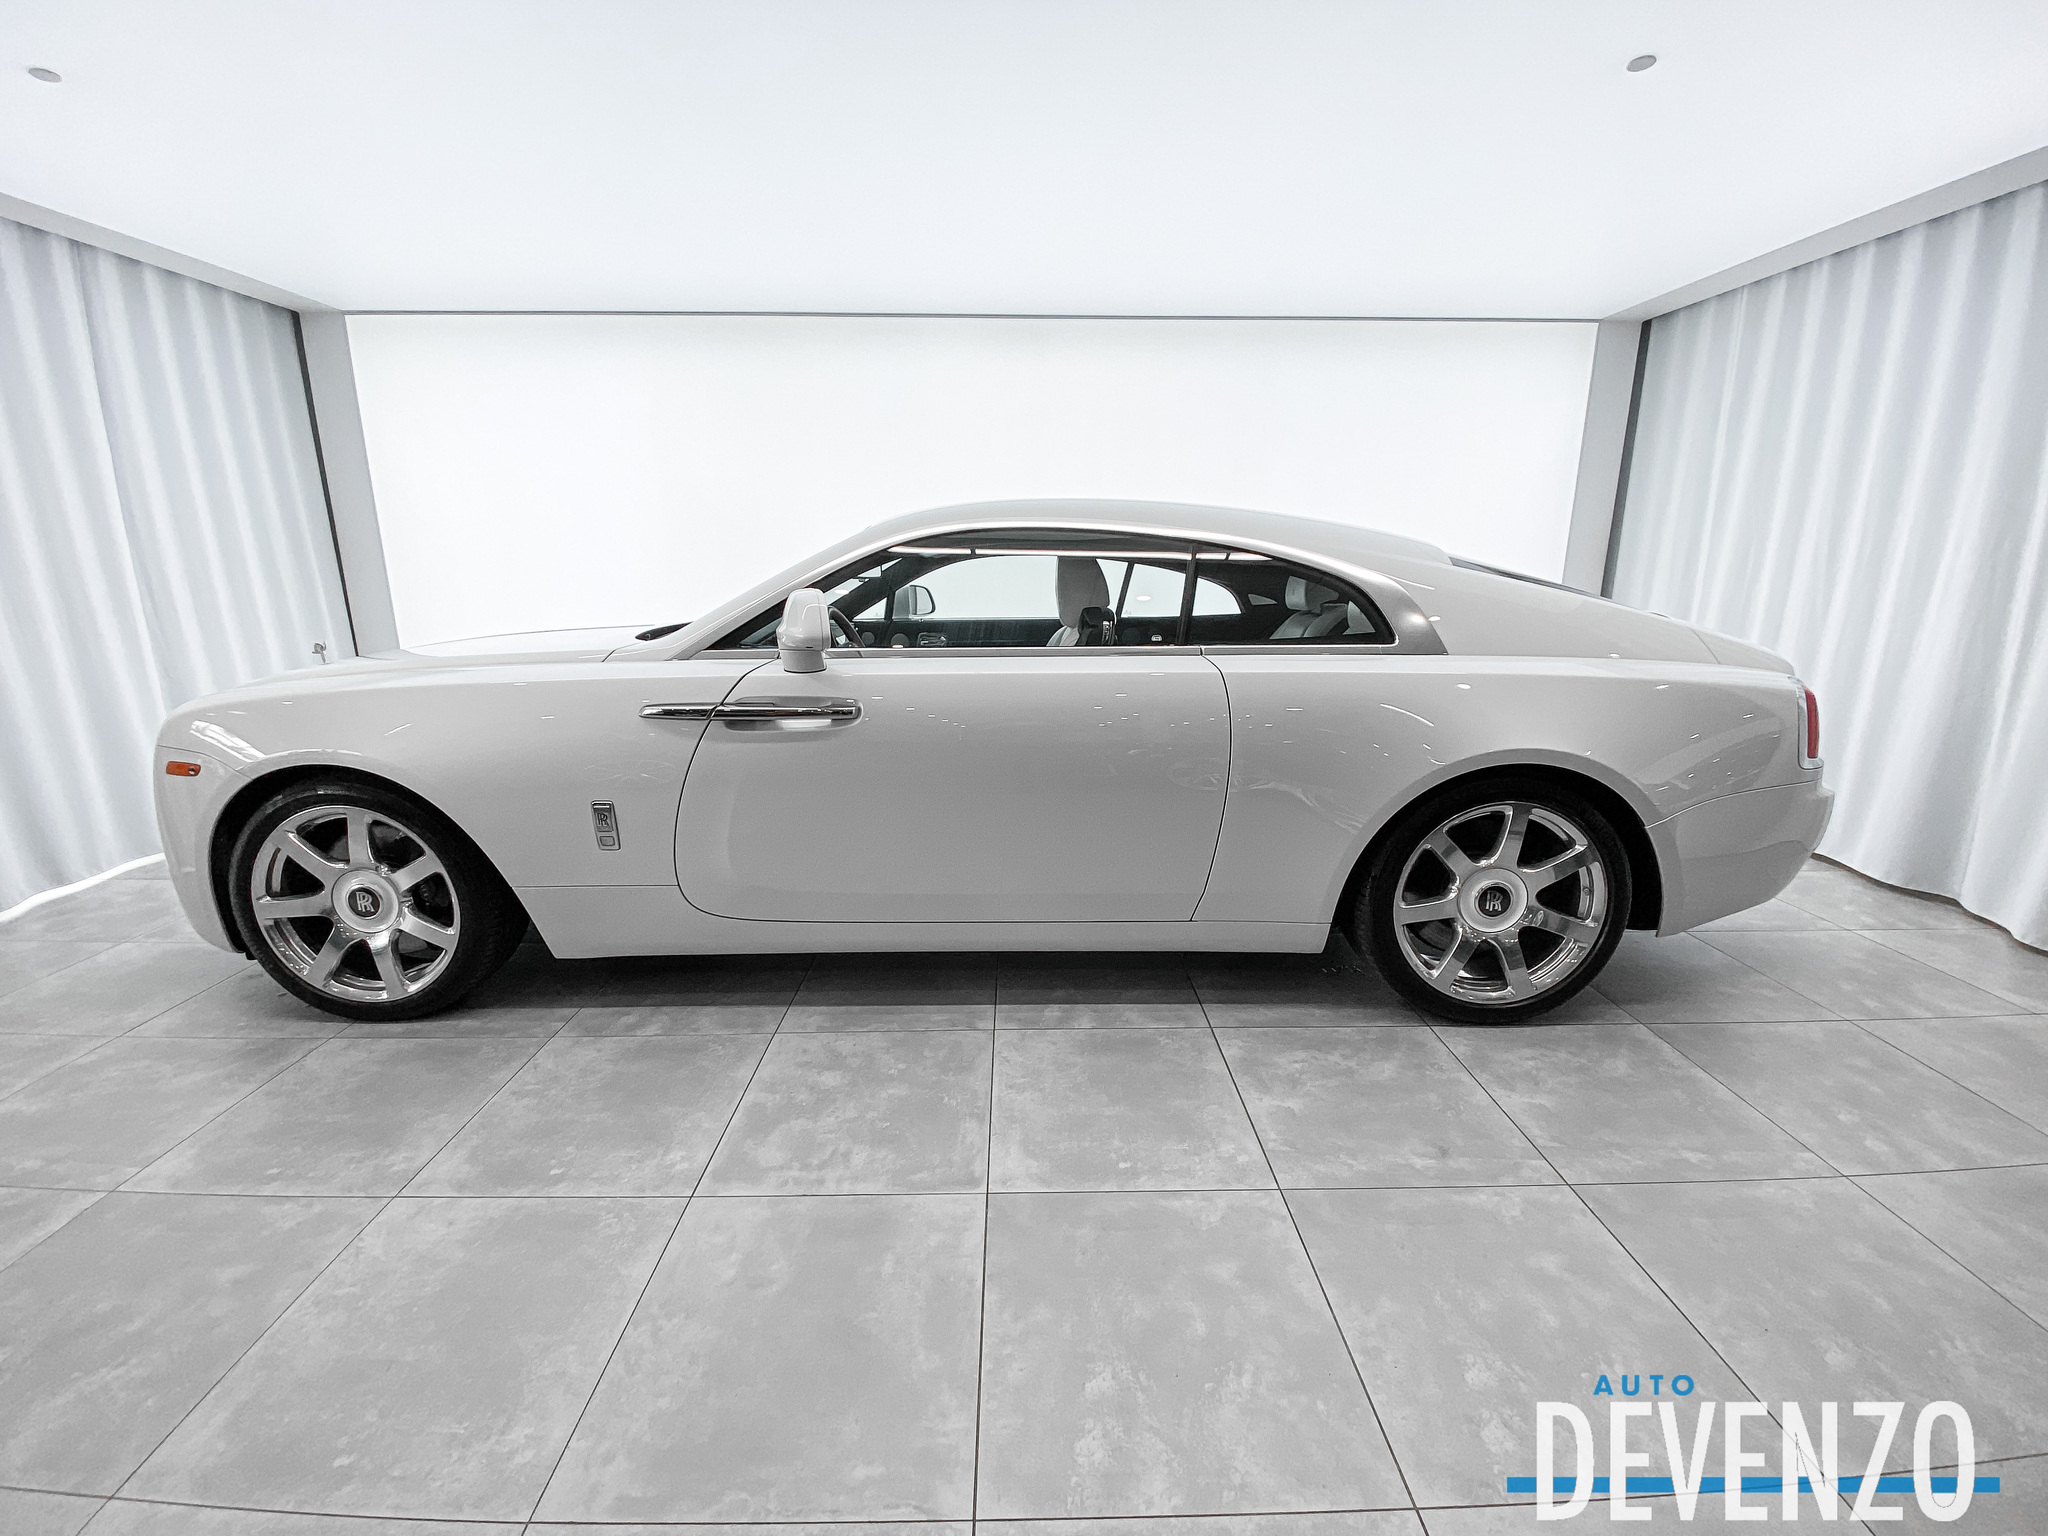 2016 Rolls-Royce Wraith Coupe 6.6 W12 STARLIGHT complet